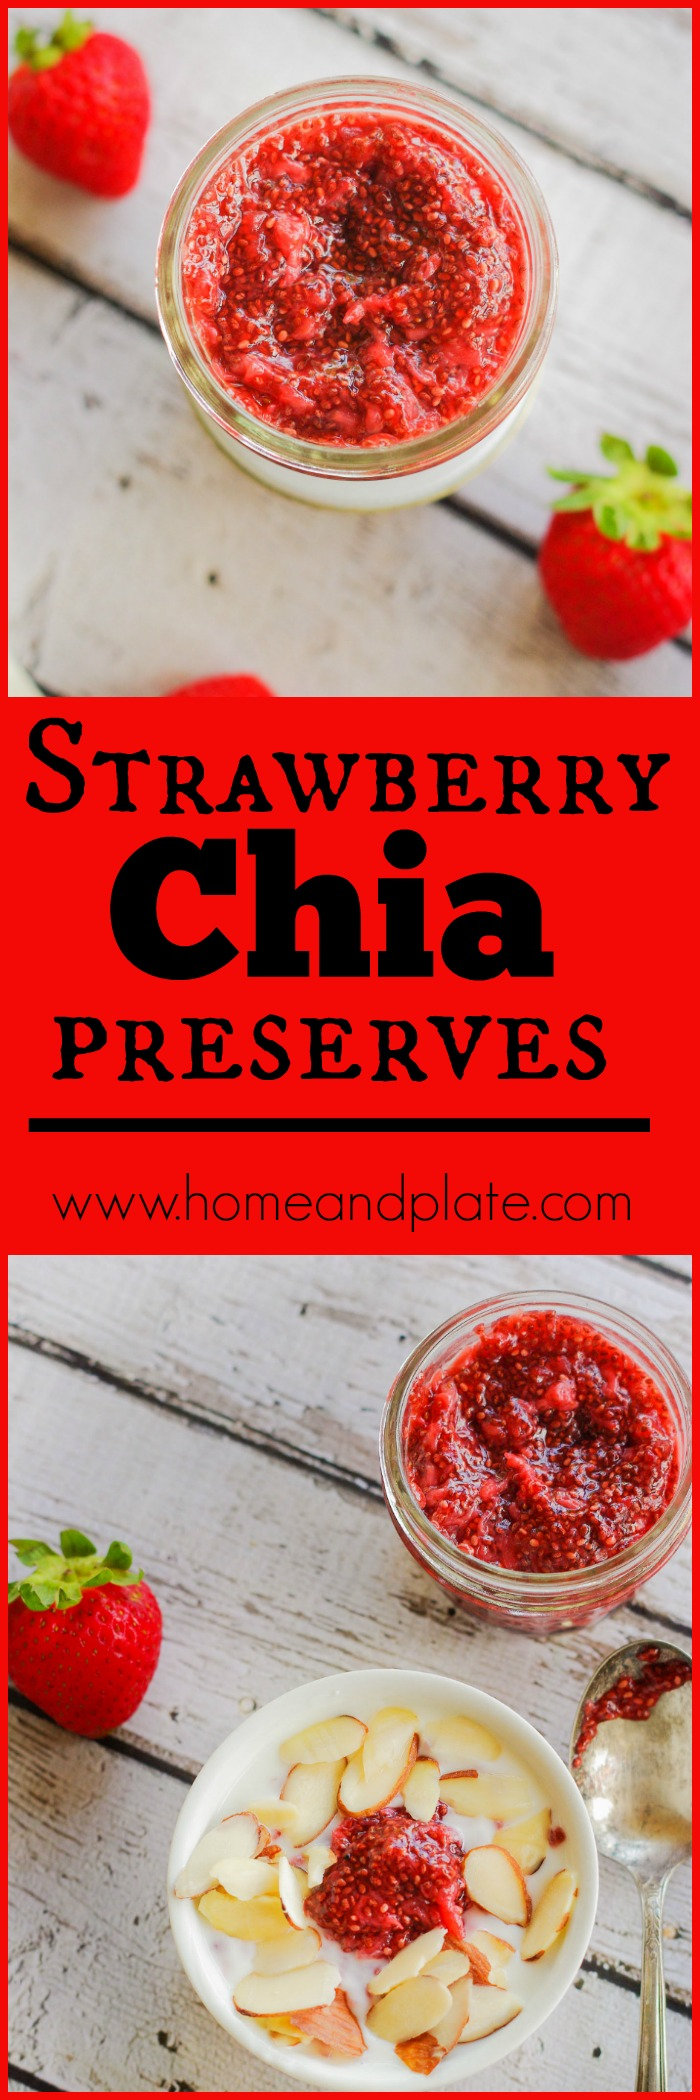 Strawberry Chia Preserves | www.homeandplate.com | Make your own preserves at home using fresh picked juicy strawberries and chia seeds instead of pectin.